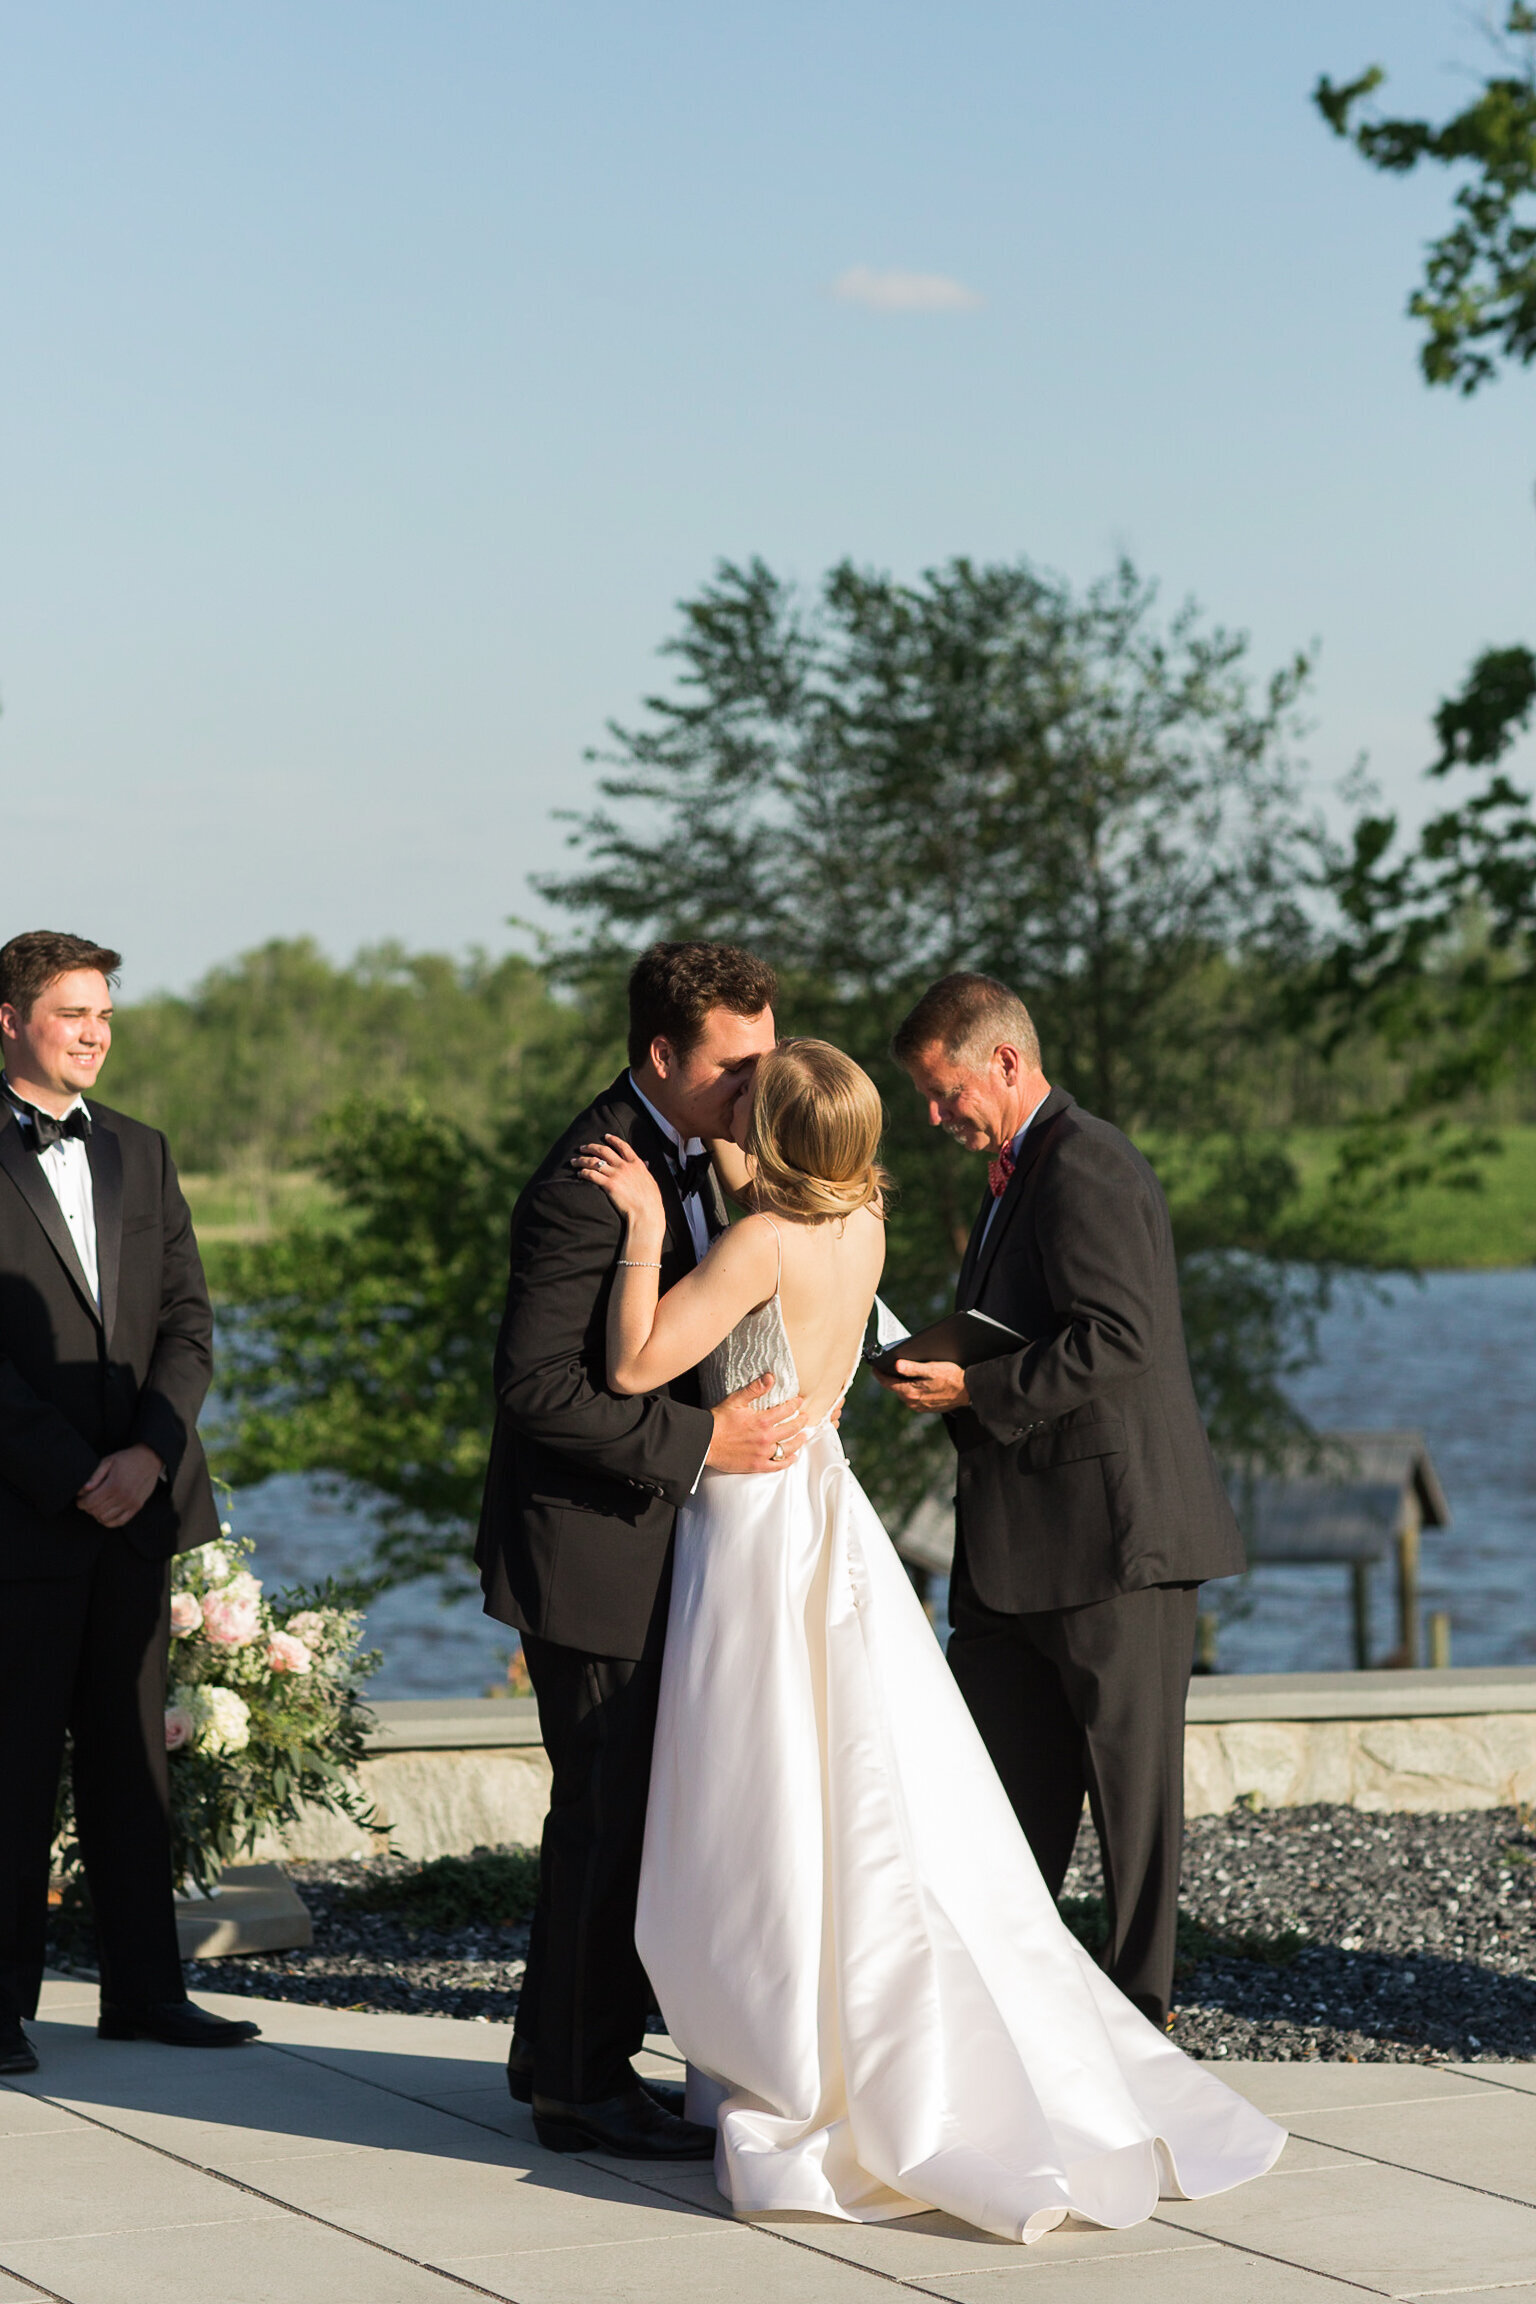 Private riverside estate wedding on the river in Virginia